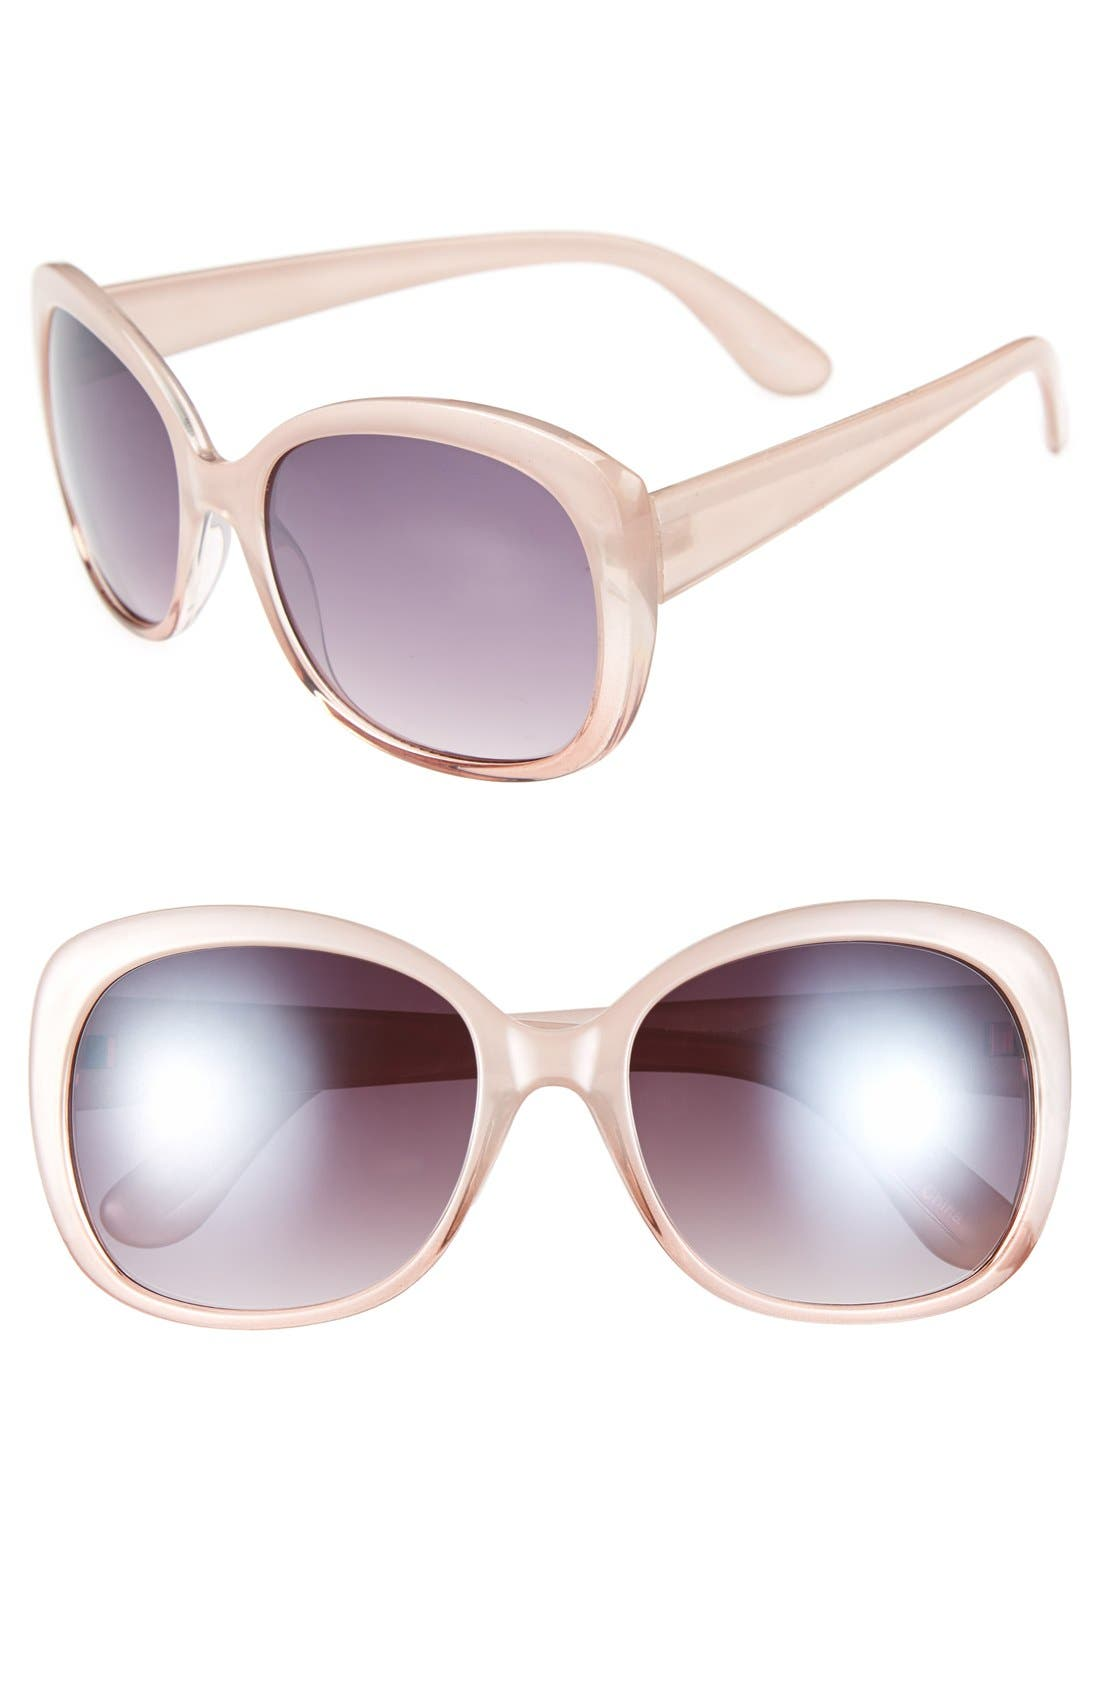 Main Image - Icon Eyewear 'Tokyo' 56mm Oversized Sunglasses (2 for $20)